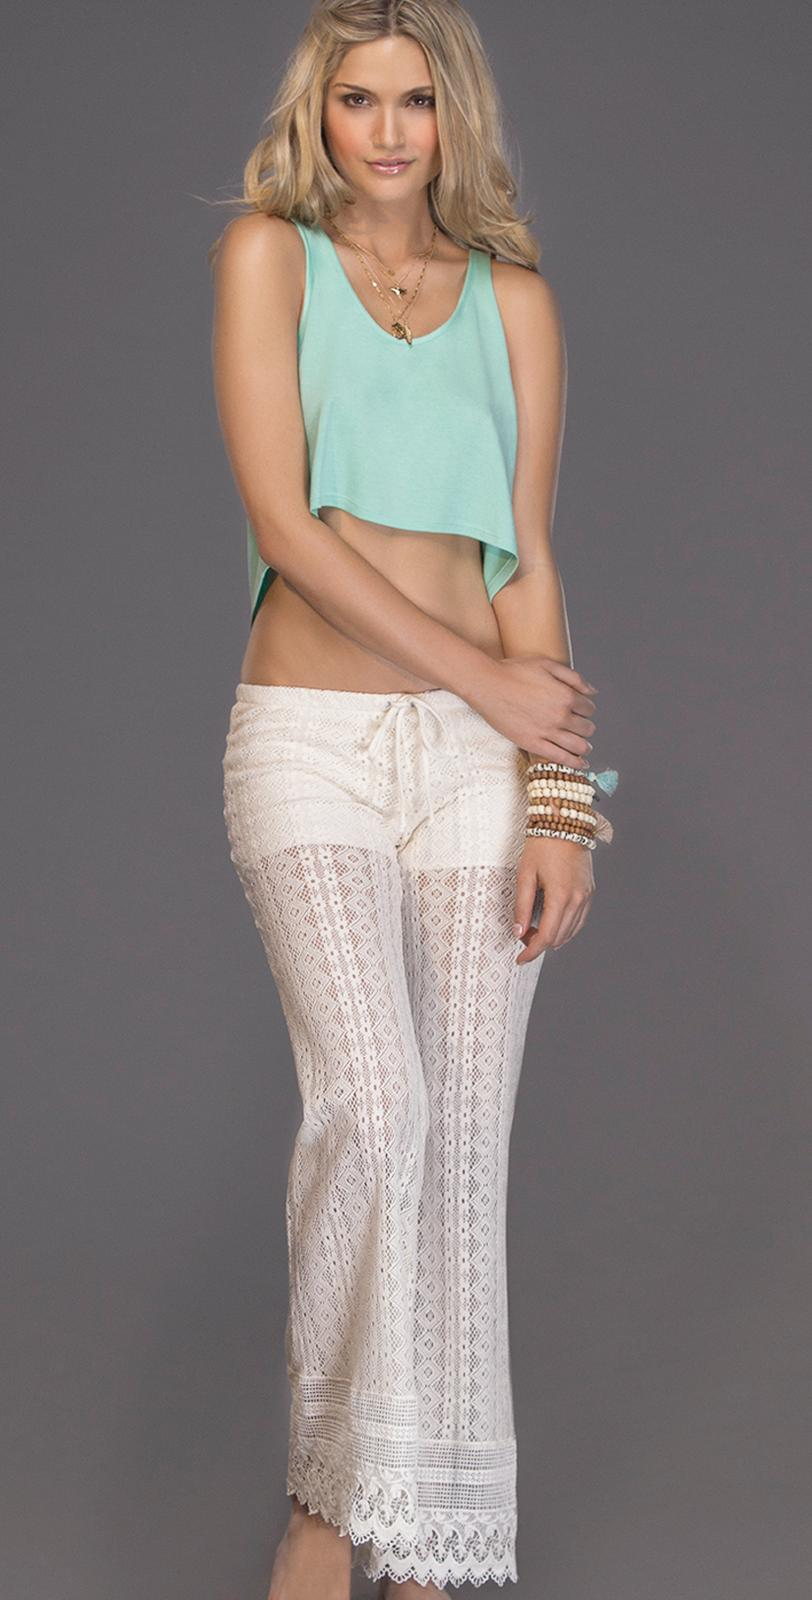 The Collection by L Space 2013 Coachella Pants | Southbeachswimsuits